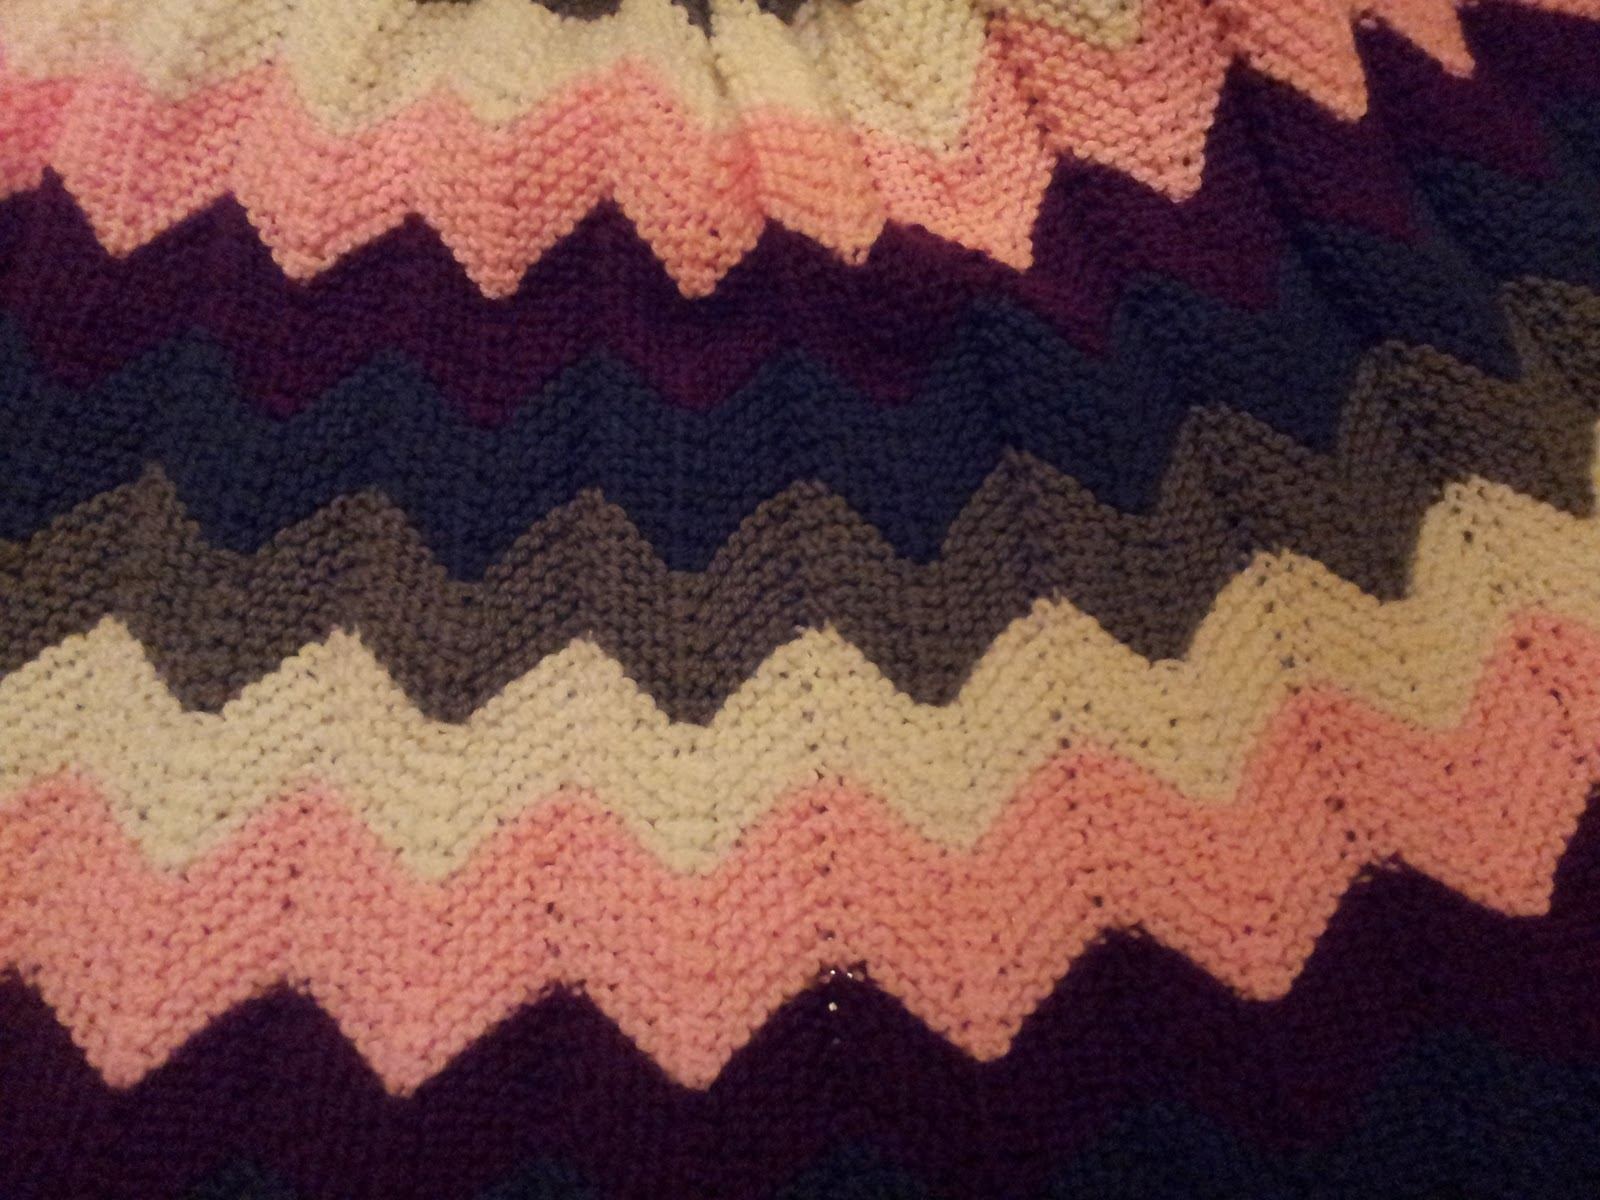 Knitted Afghan Patterns Ripple images